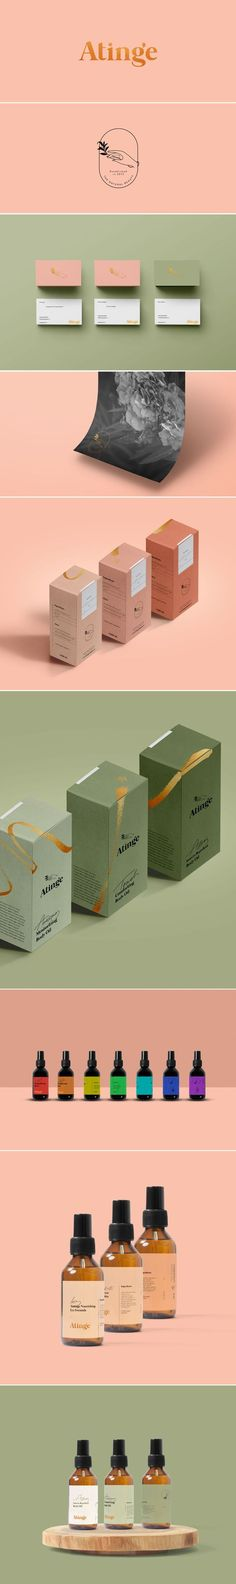 (35) Sophisticated and charming branding for Atinge by Cocorrina:   Branding and Design   Pinterest / Branding / Ideas / Inspiration / Brand / Design / Packaging / Beauty / Cosmetics / SkinCare / Botanical / Vintage / Retro / Line Art / Gold / Militar Green / Color Accent / Classic